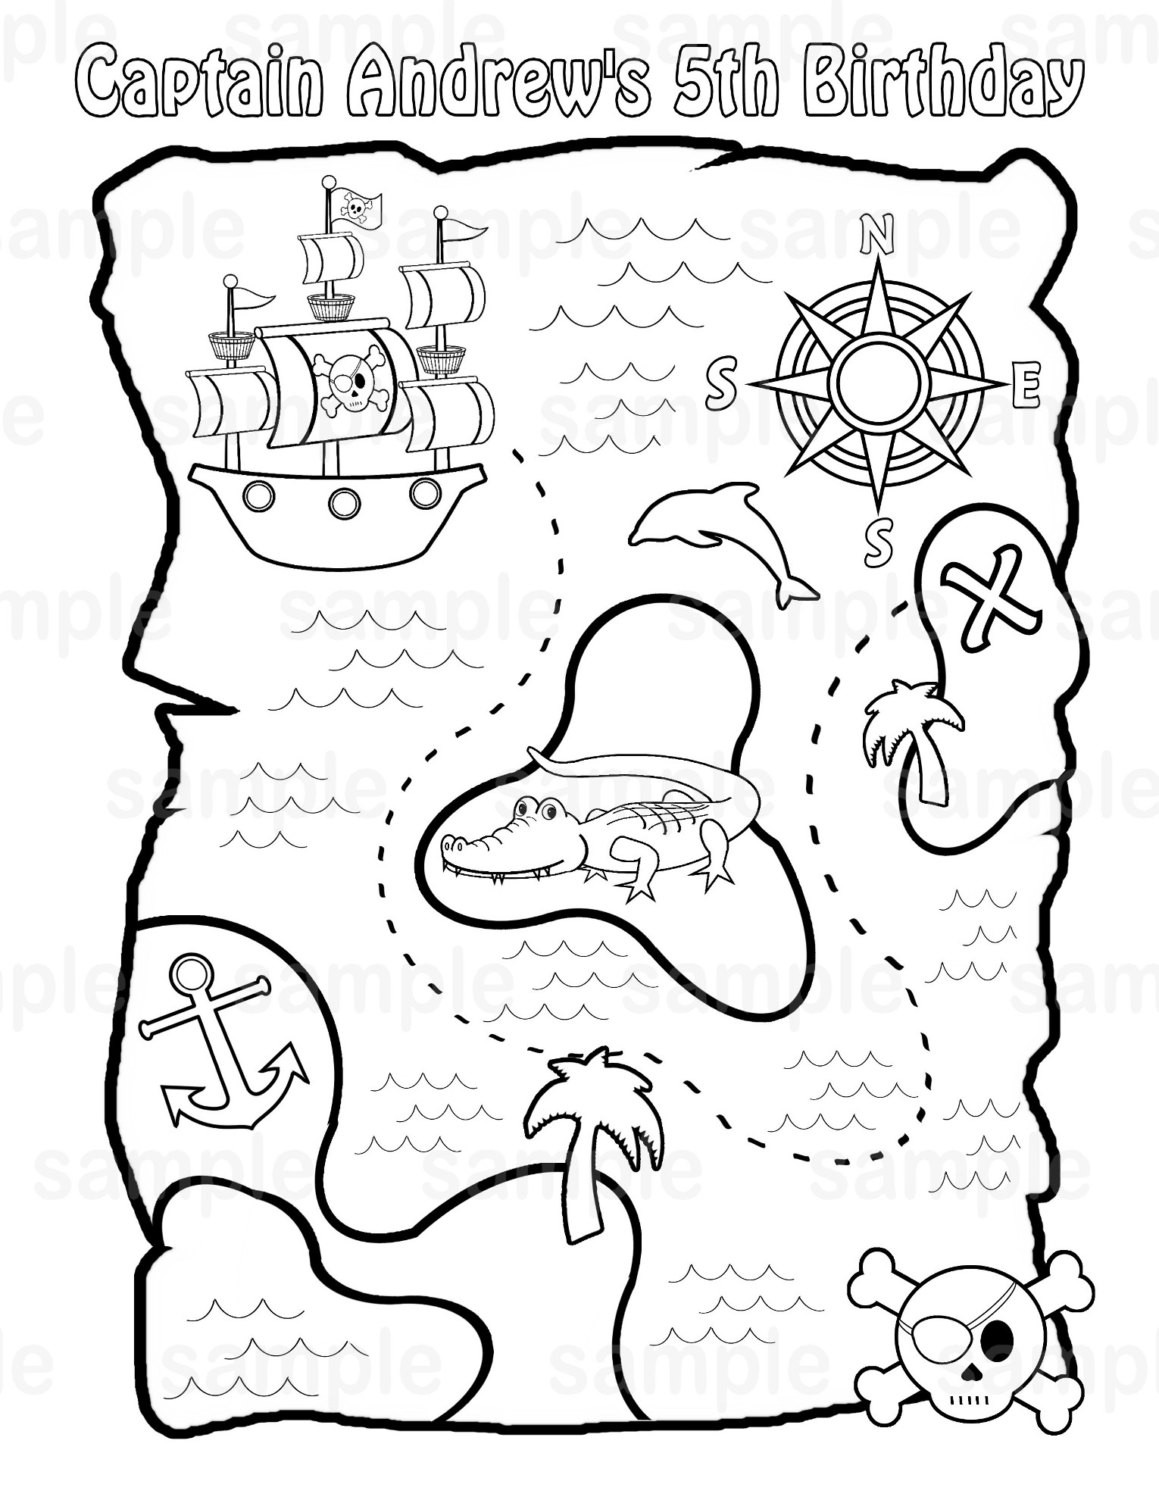 Free Map Coloring Pages at GetDrawings.com | Free for personal use ...